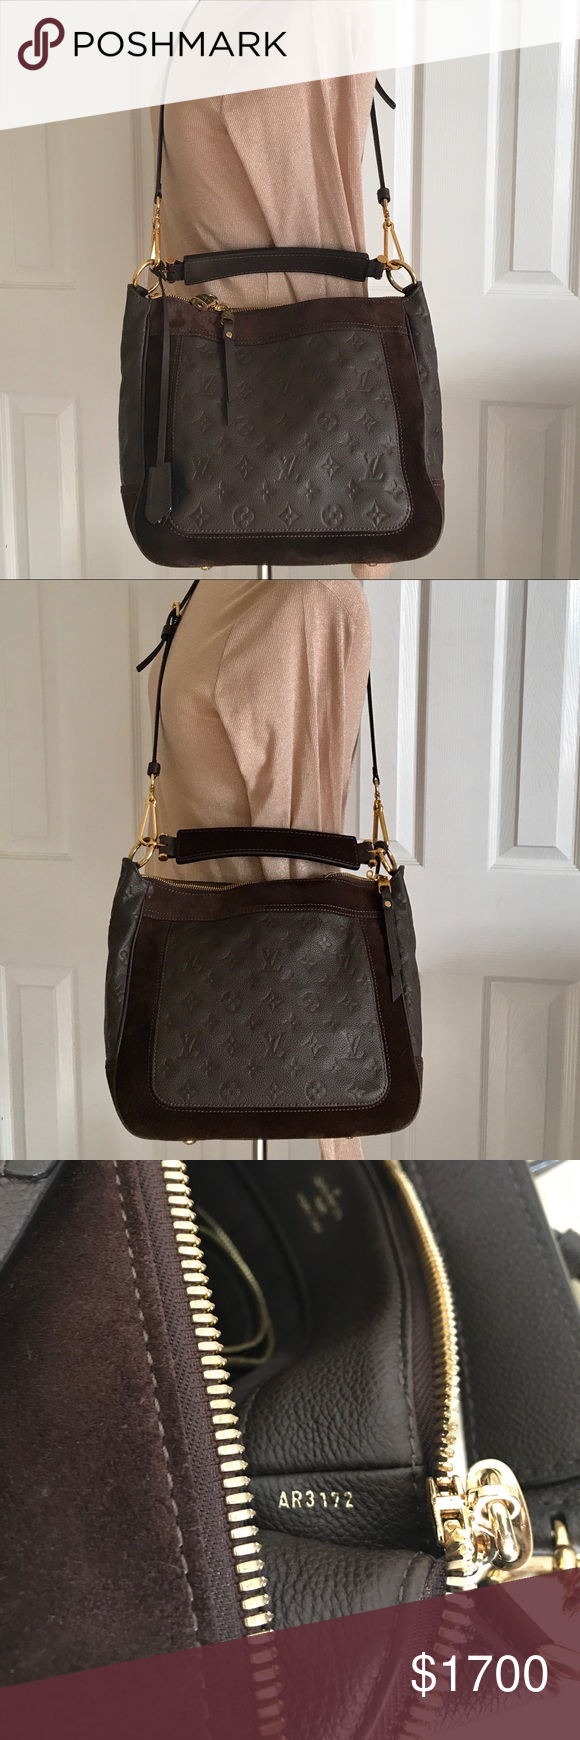 81f15b26c385 LV Audacieuse Monogram Empreinte Leather PM Bag A newer creation from the  house of Louis Vuitton